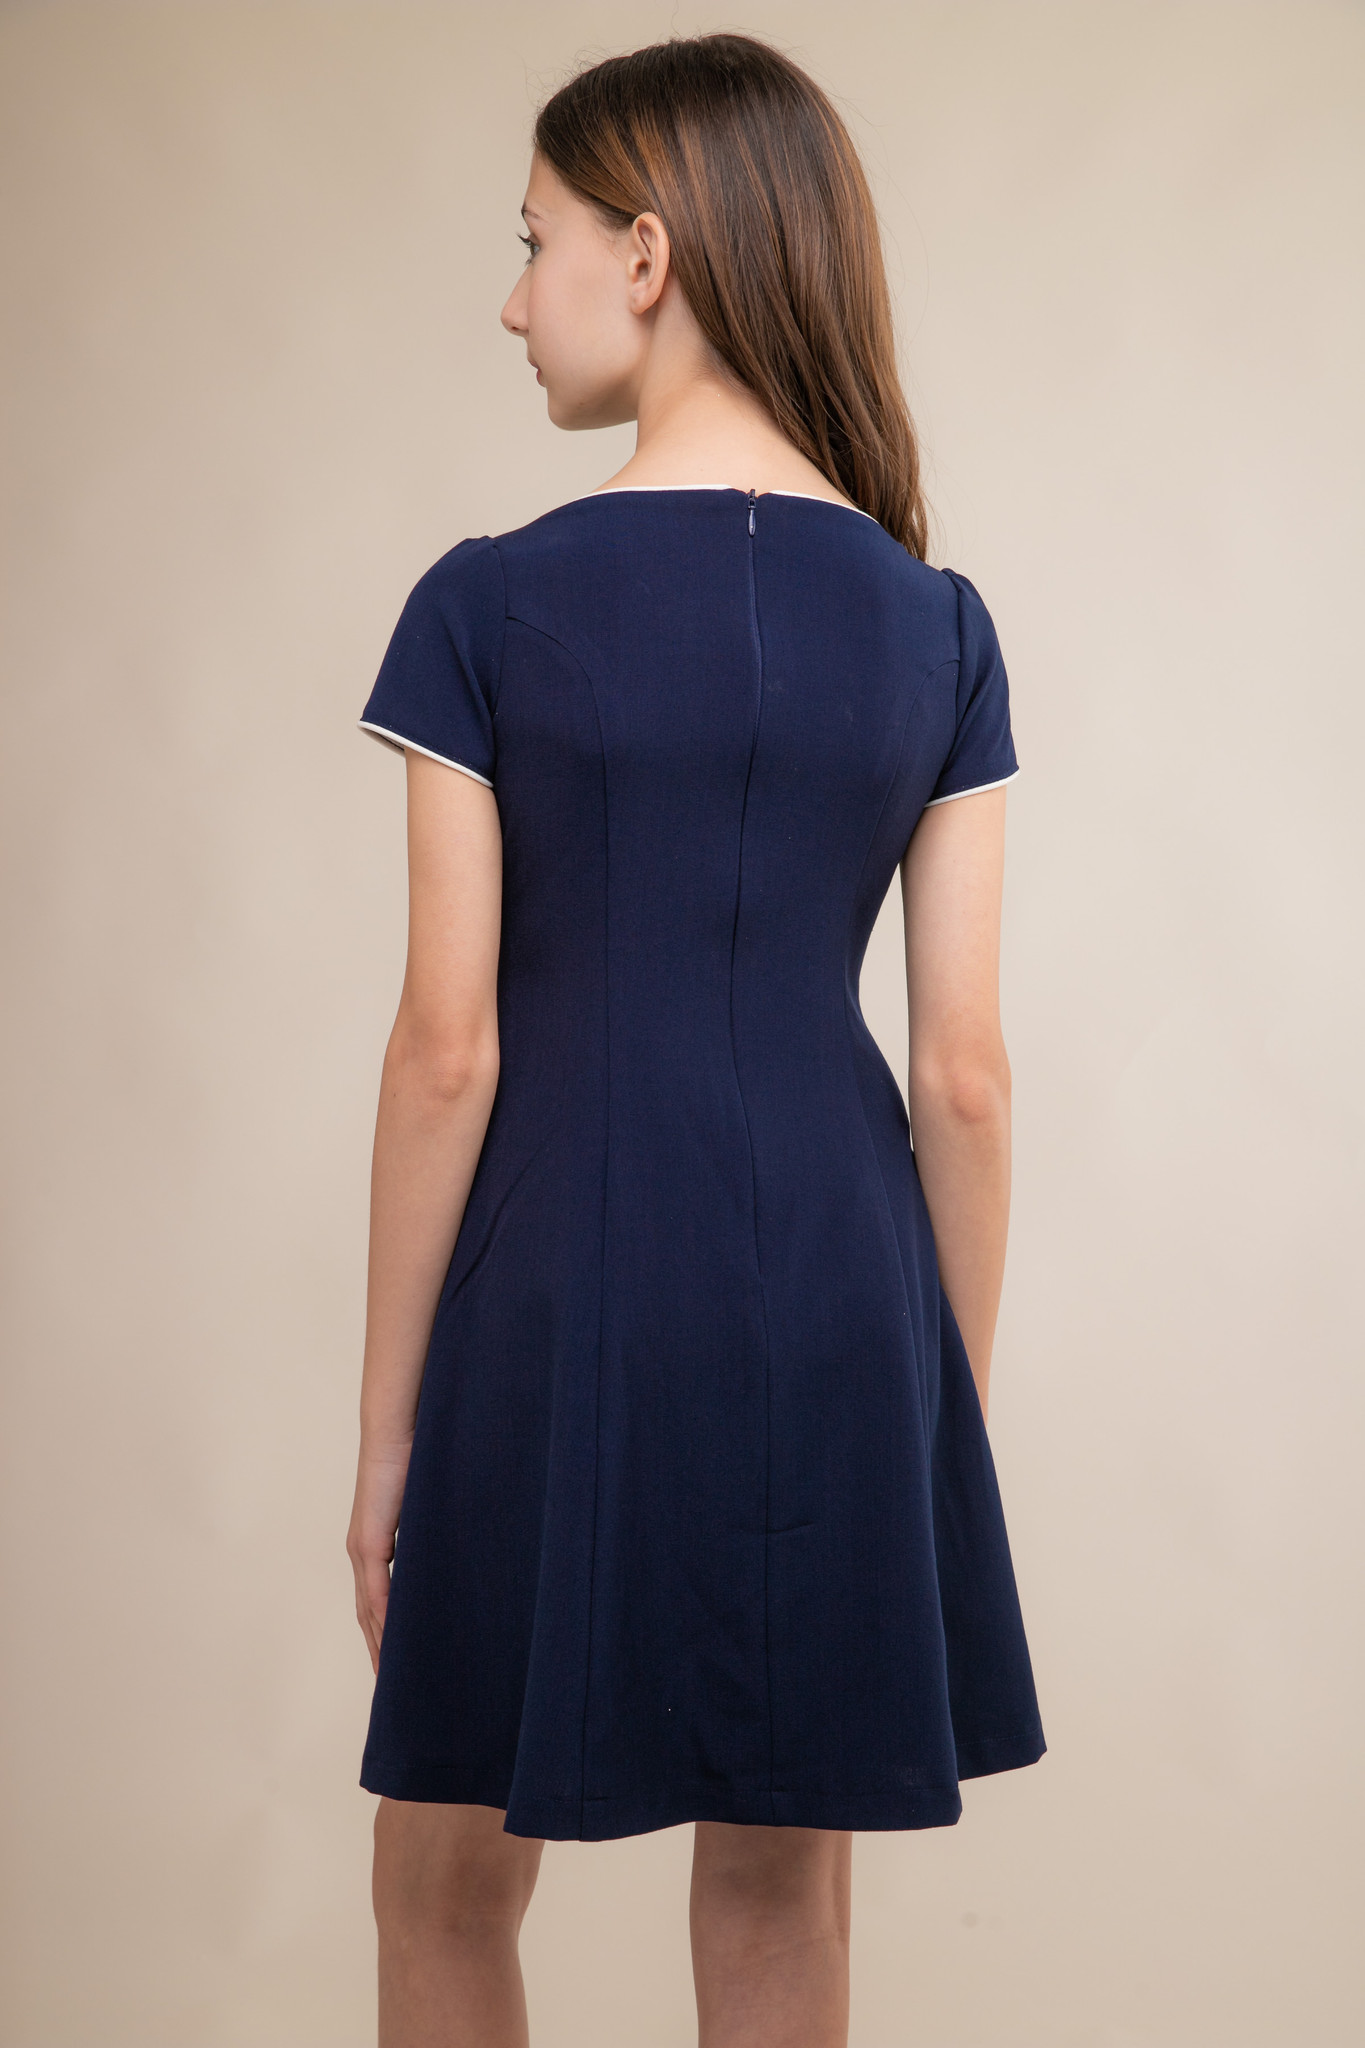 Navy and Ivory Short Sleeve Flare Dress in Longer Length back.